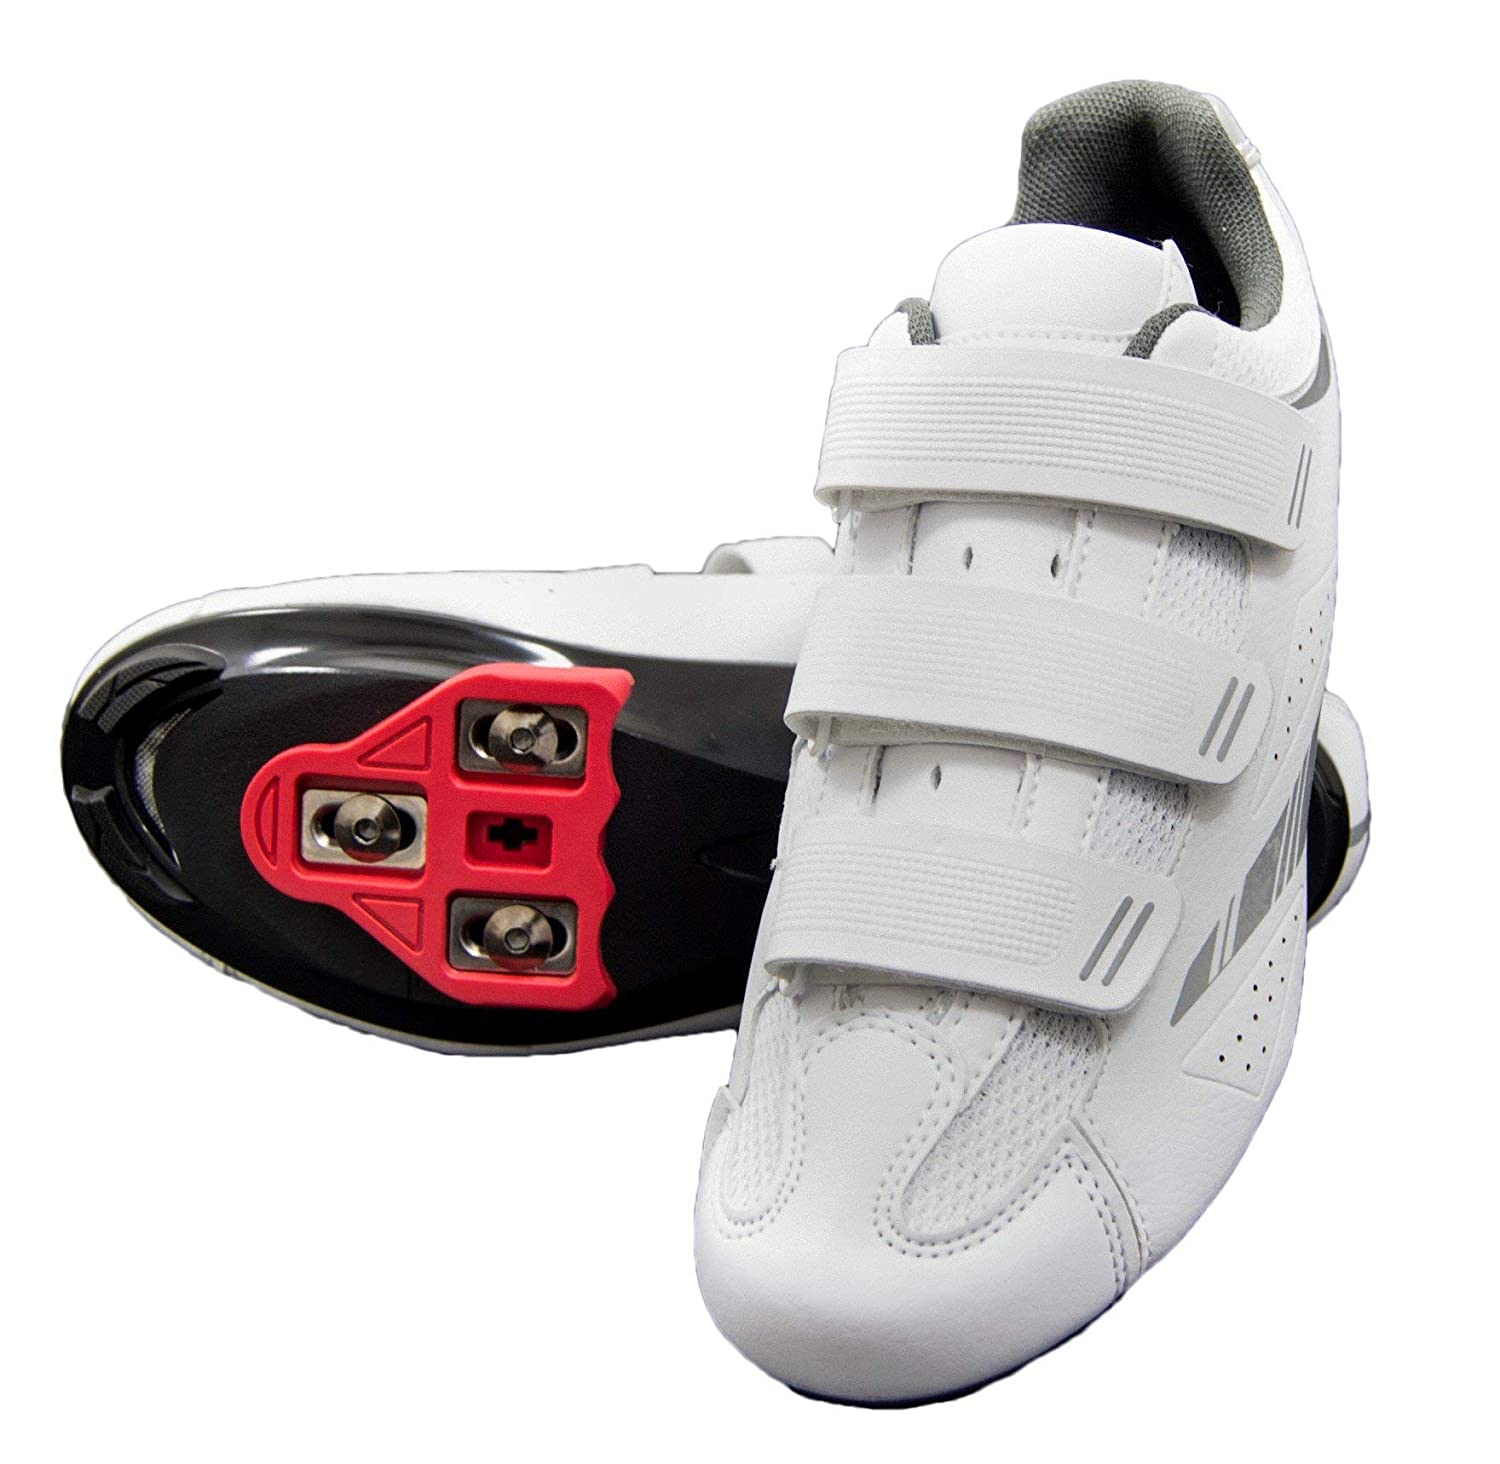 8f46739ce42004 Tommaso Pista 100 Women's Spin Class Ready Cycling Shoe with Compatable  Cleat, Look Delta, SPD - Black, Blue, Pink, White: Amazon.co.uk: Shoes &  Bags